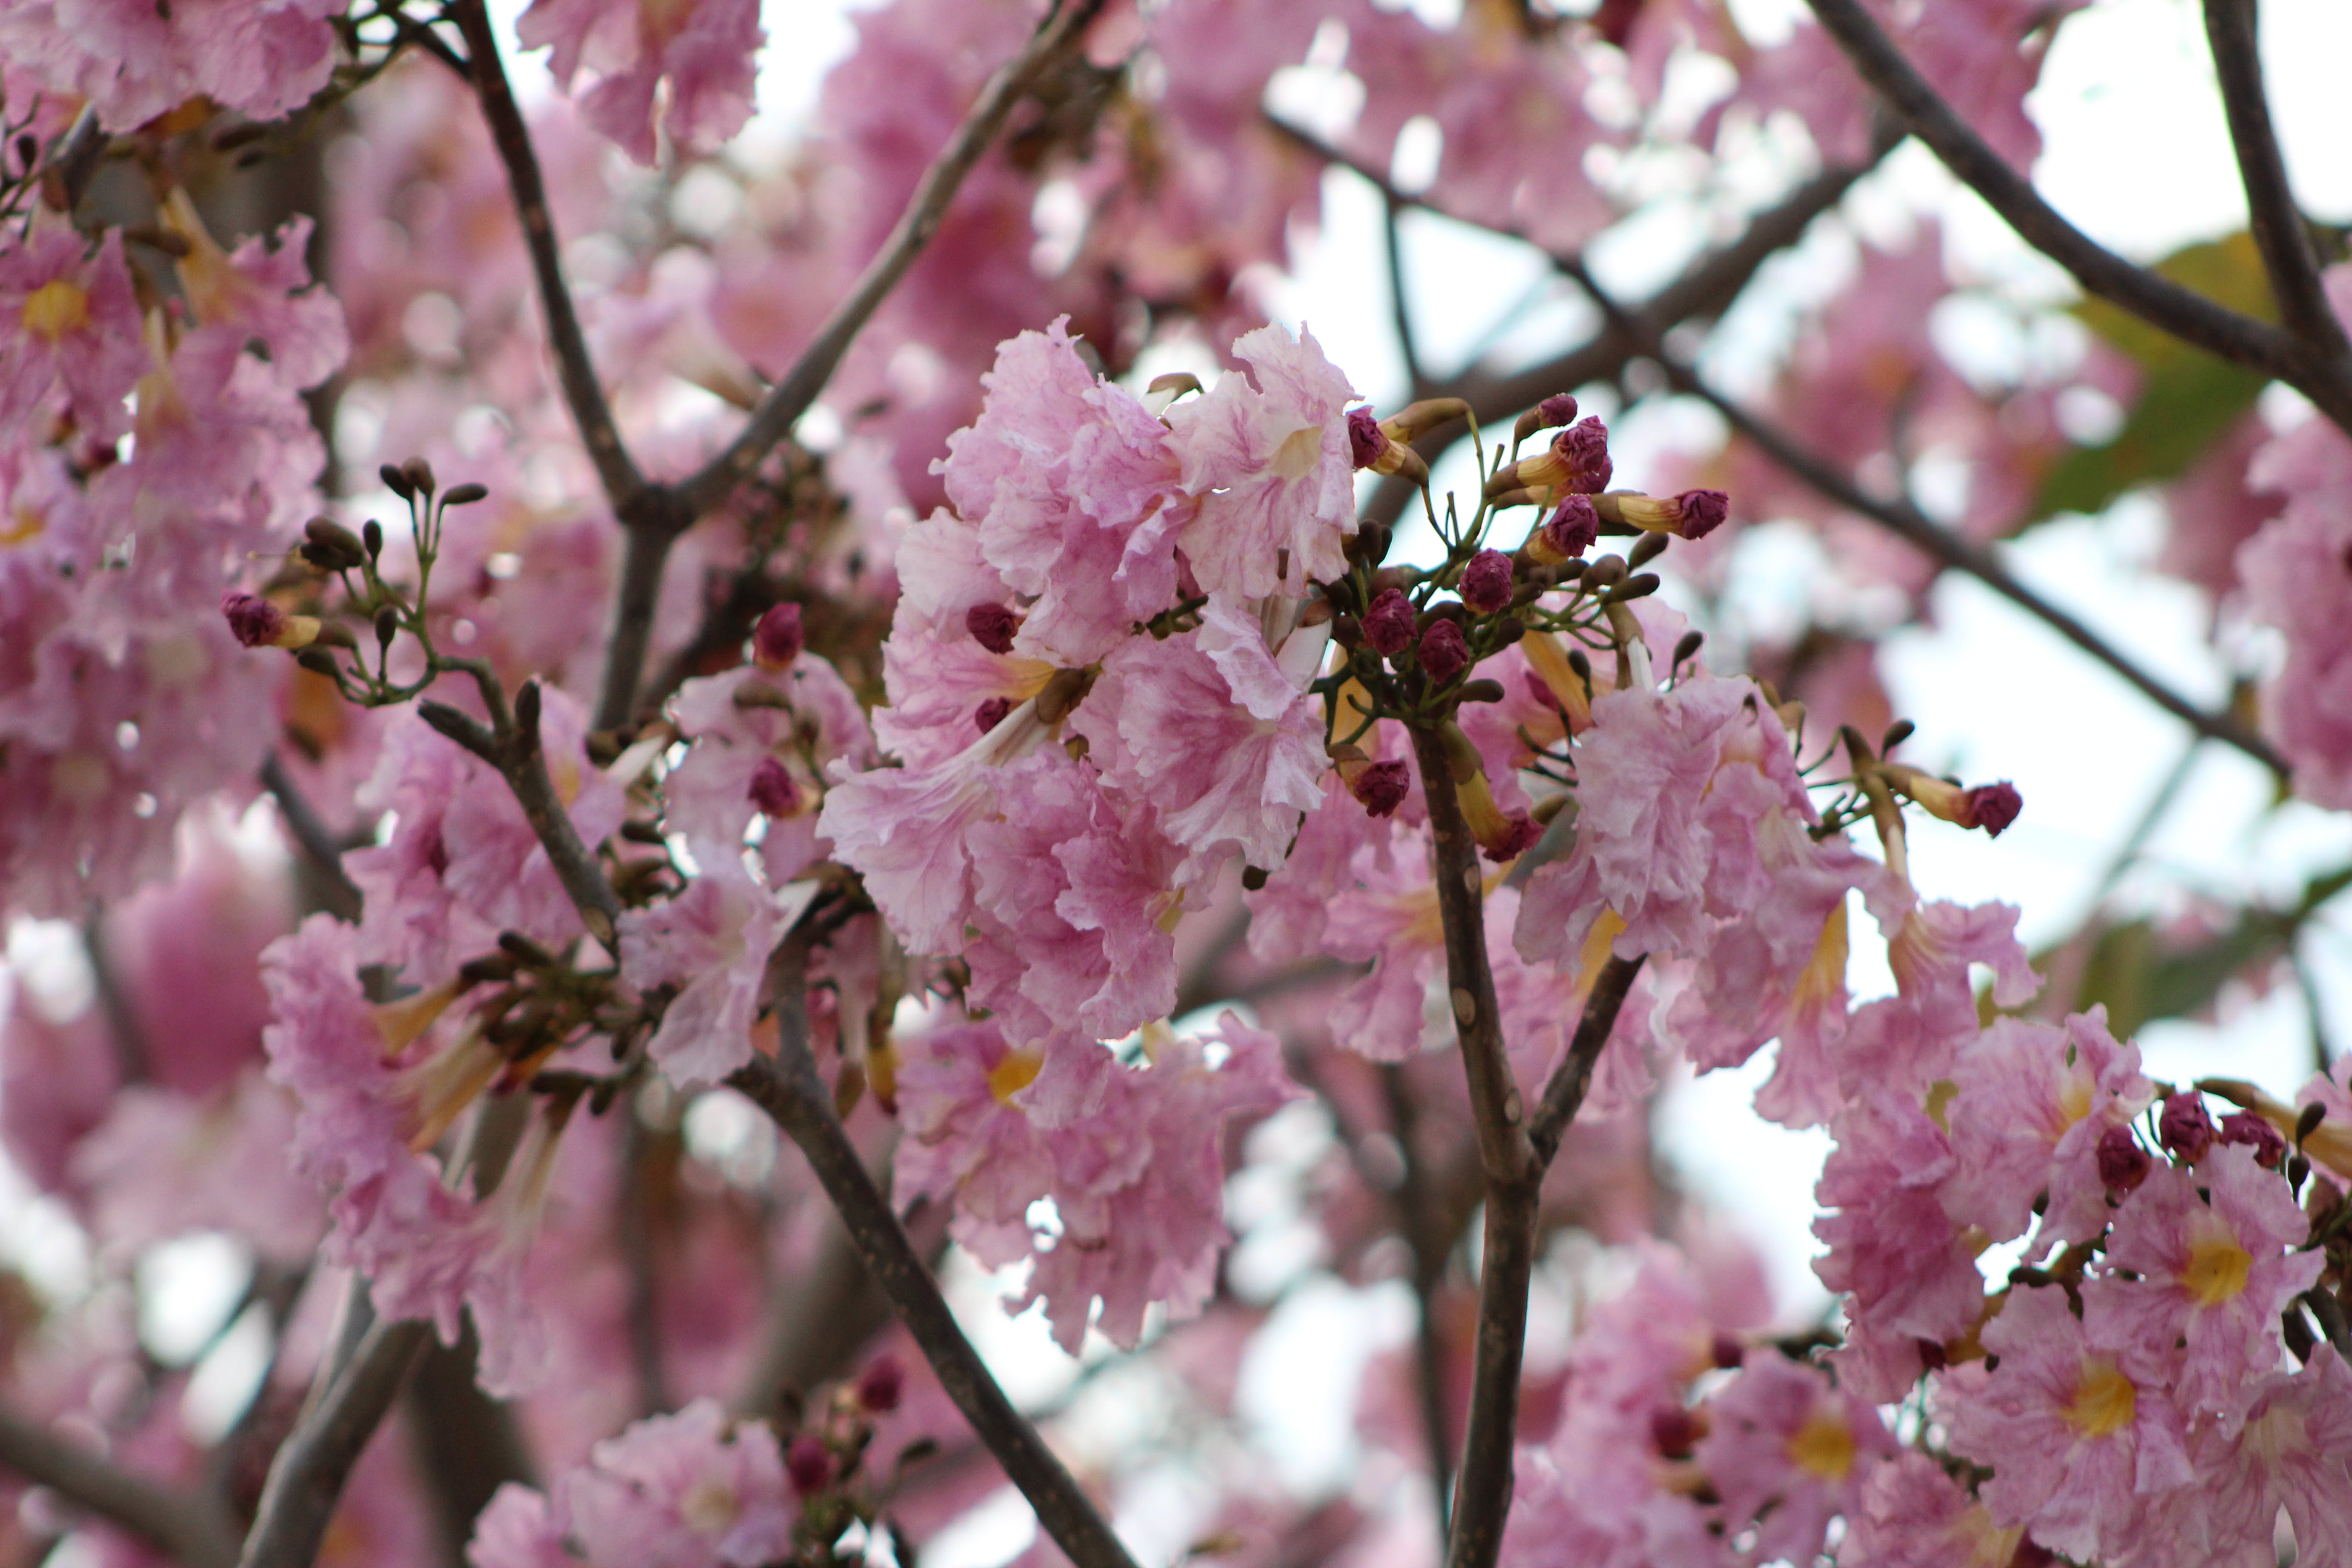 Free stock photo of blossoms, bunches of flowers, flowers